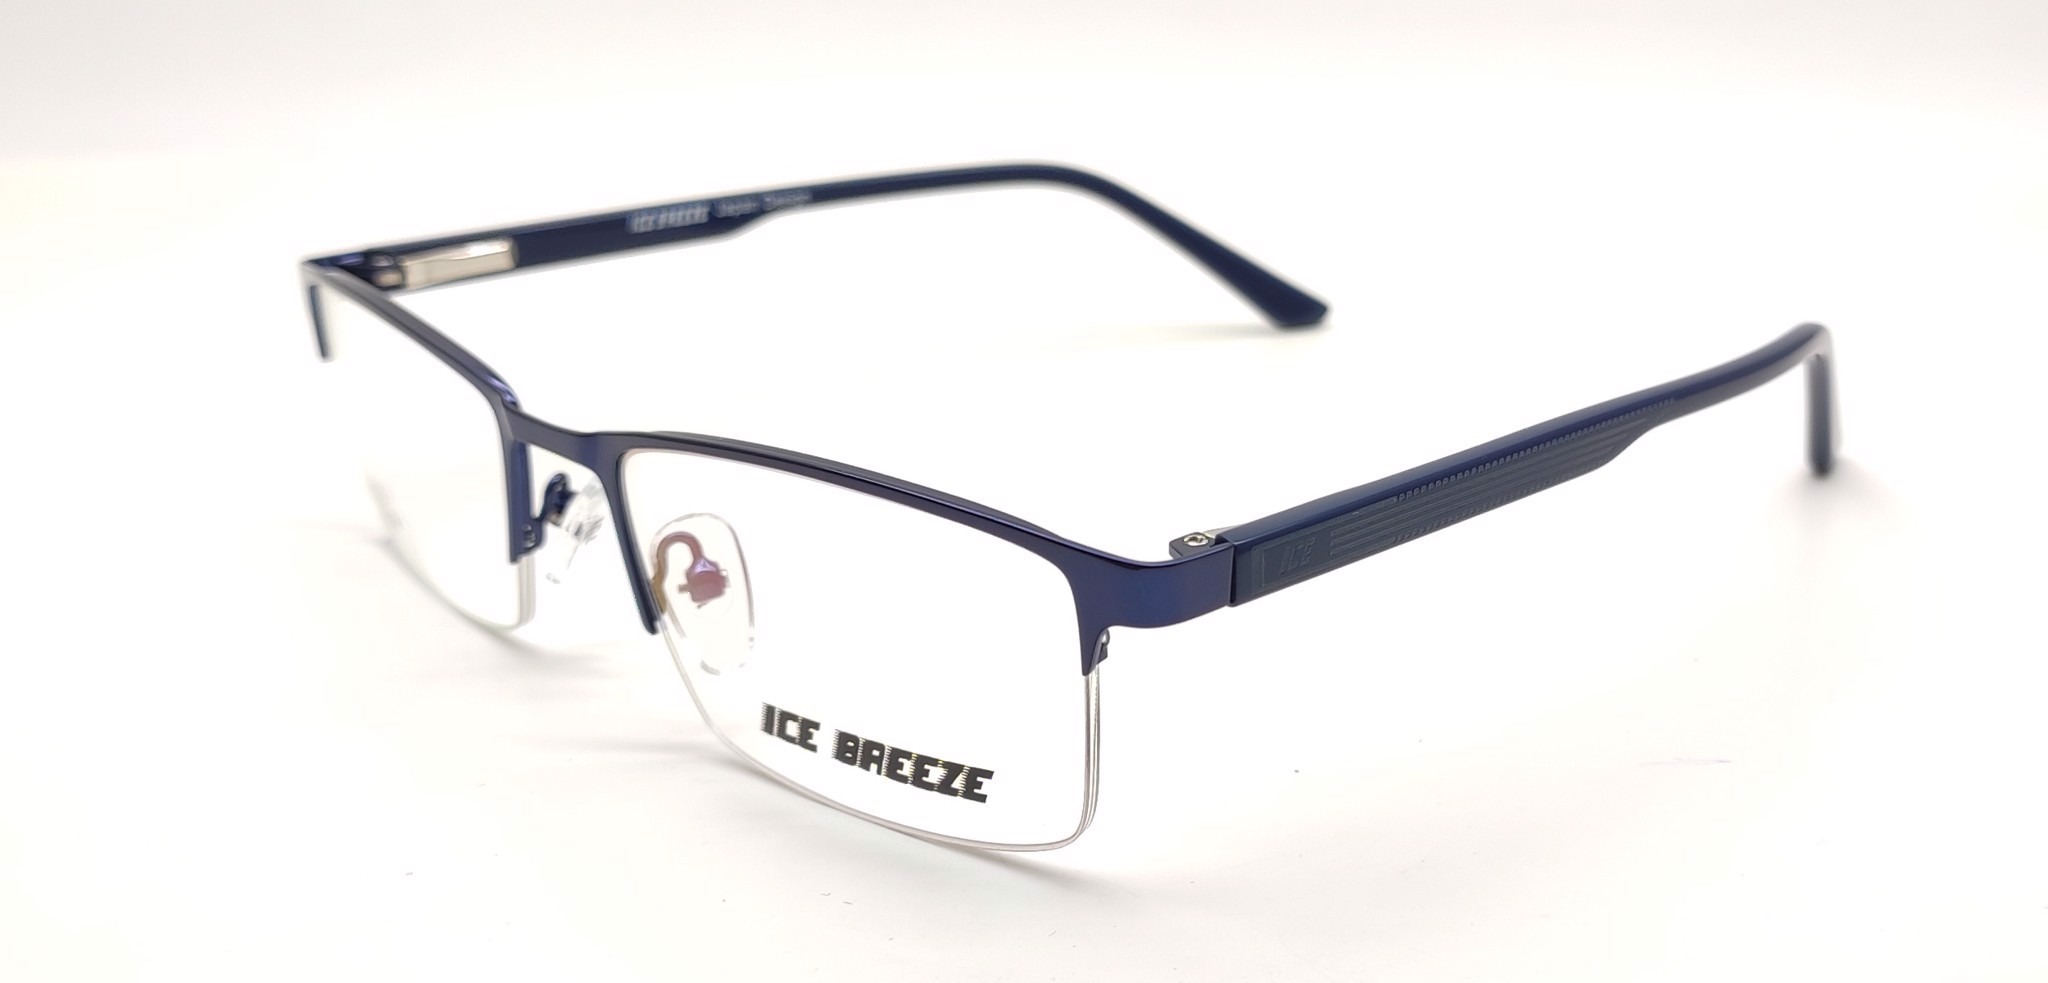 ICE BREEZE 3521